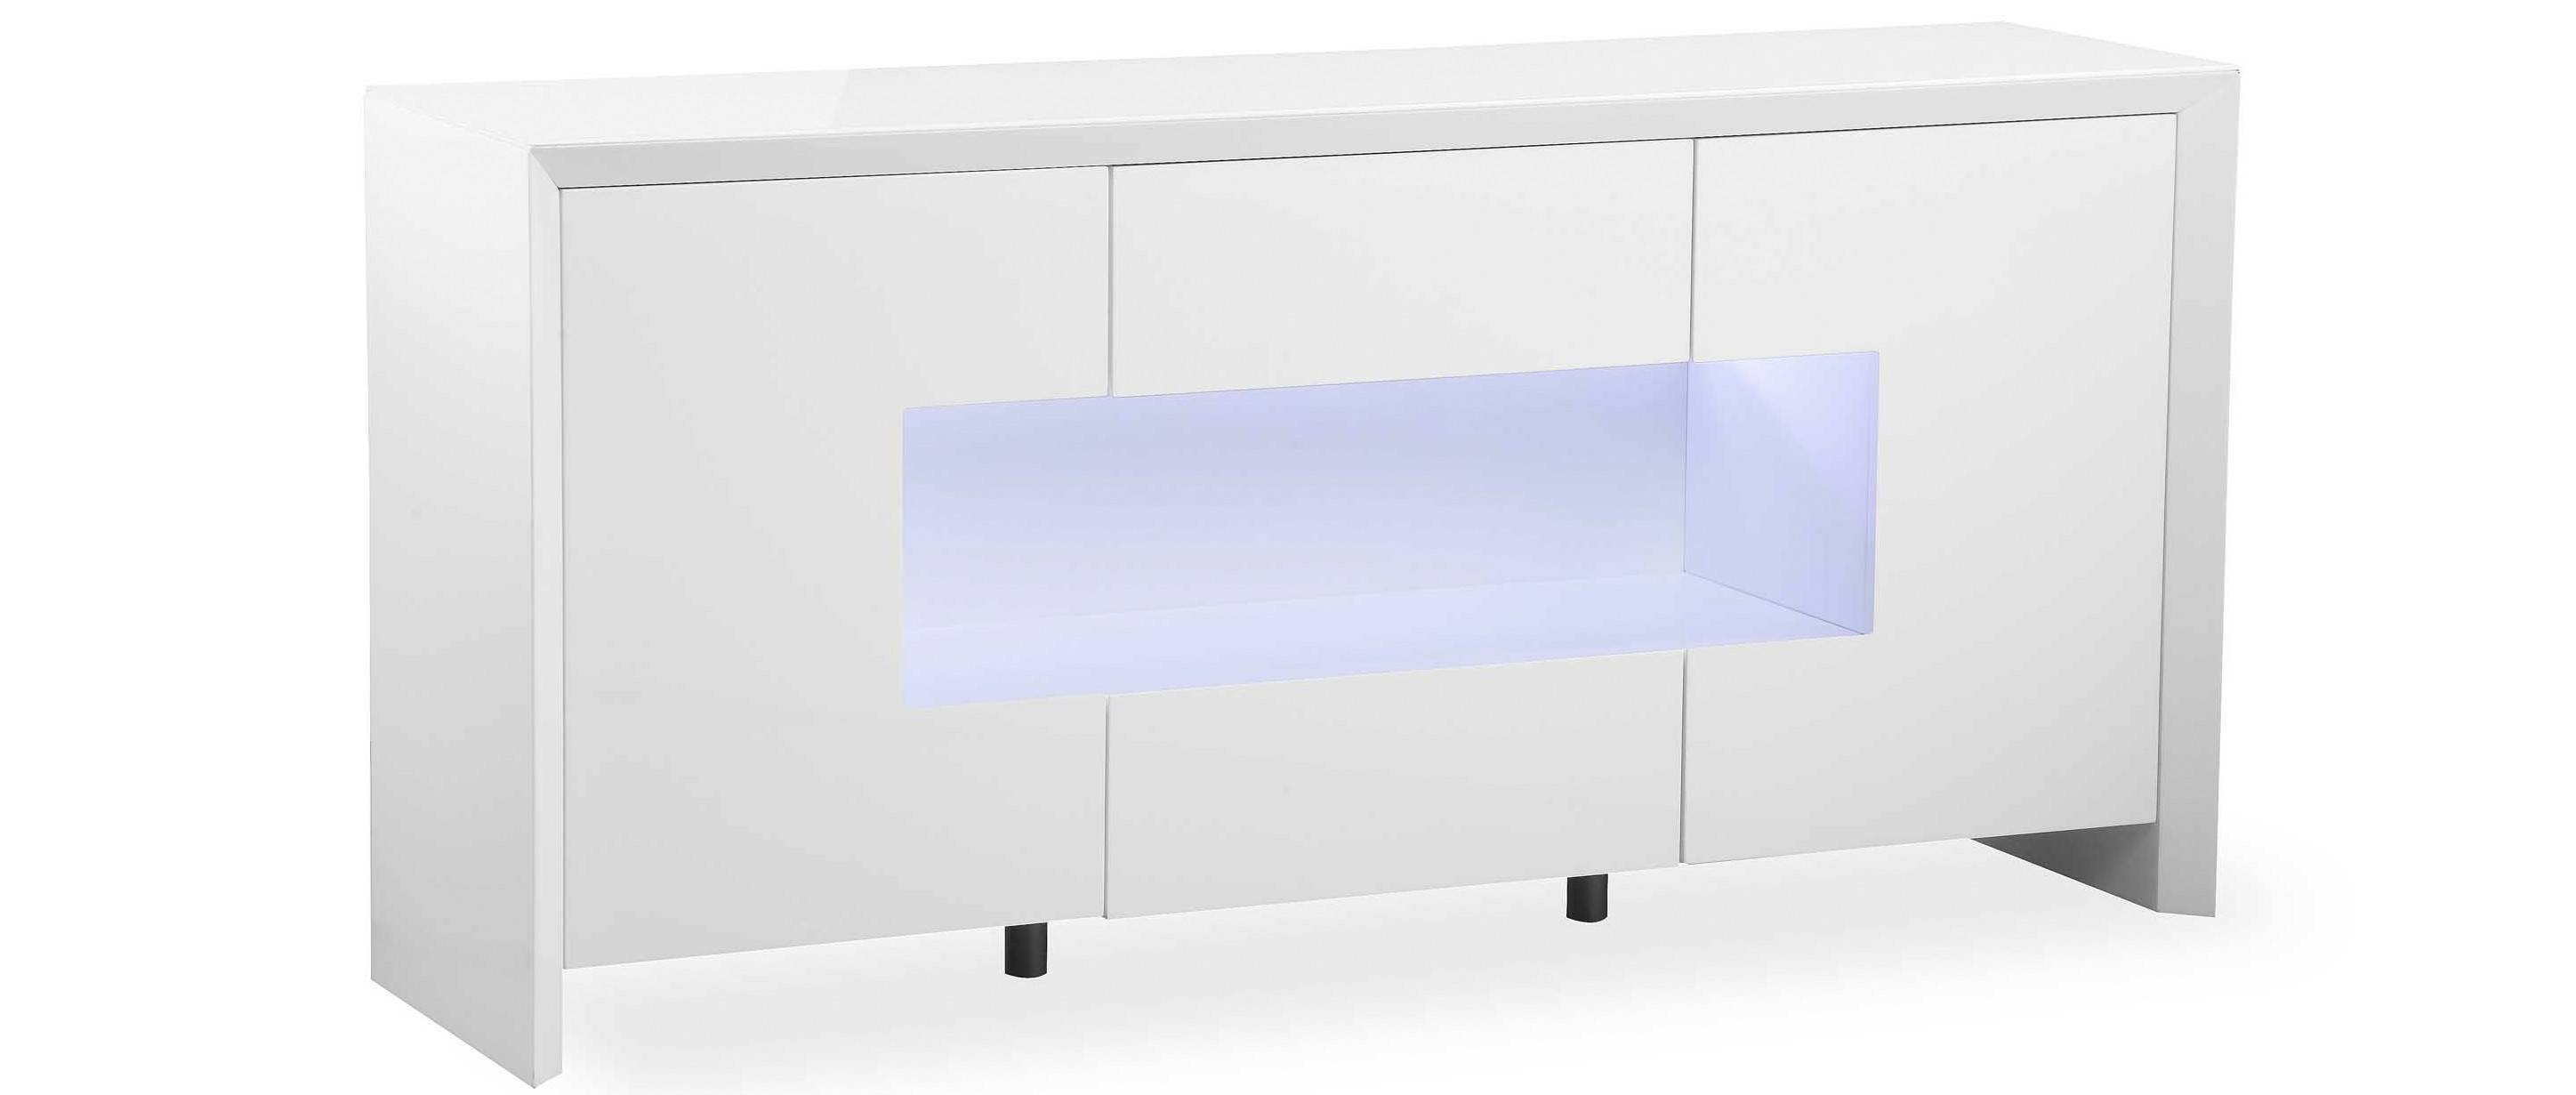 Soho - L.e.d. Display Sideboard - White High Gloss within Gloss White Sideboards (Image 26 of 30)